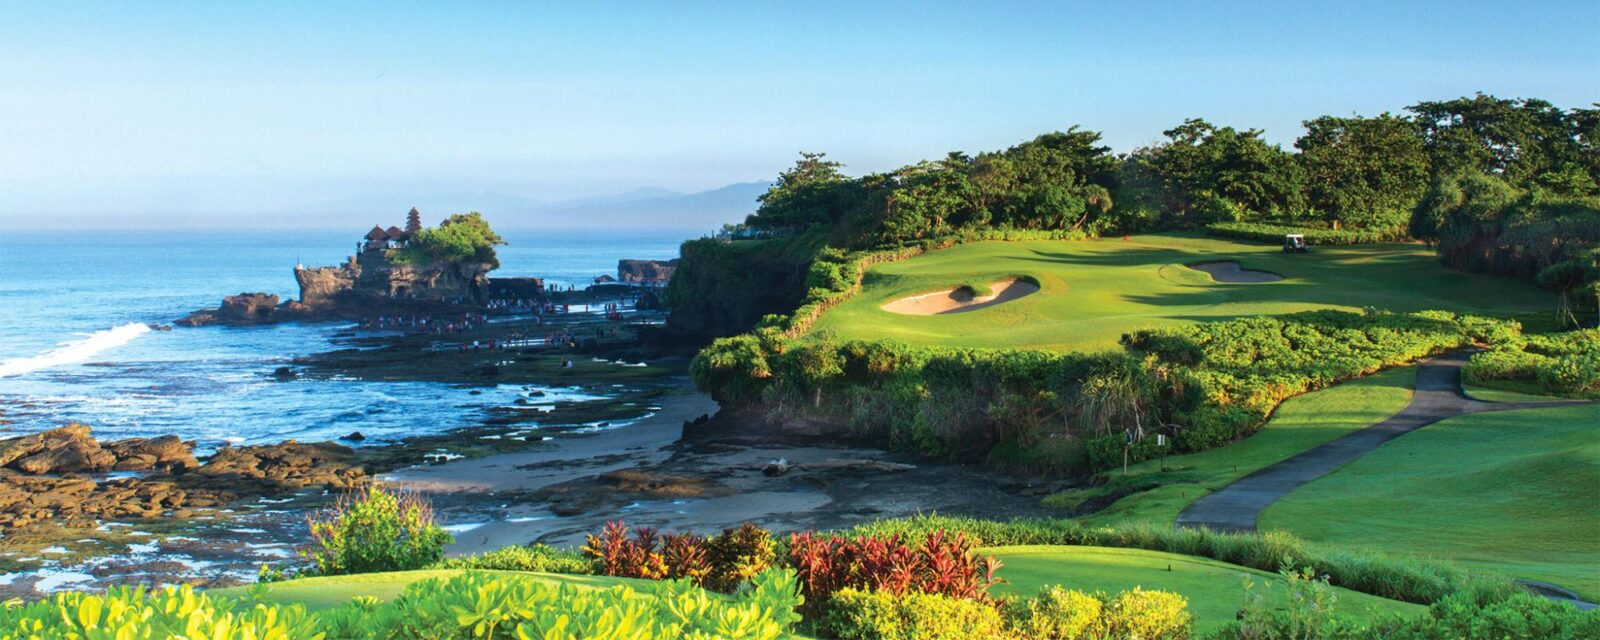 Bali, Java Have Most Of Indonesia's Golf Courses